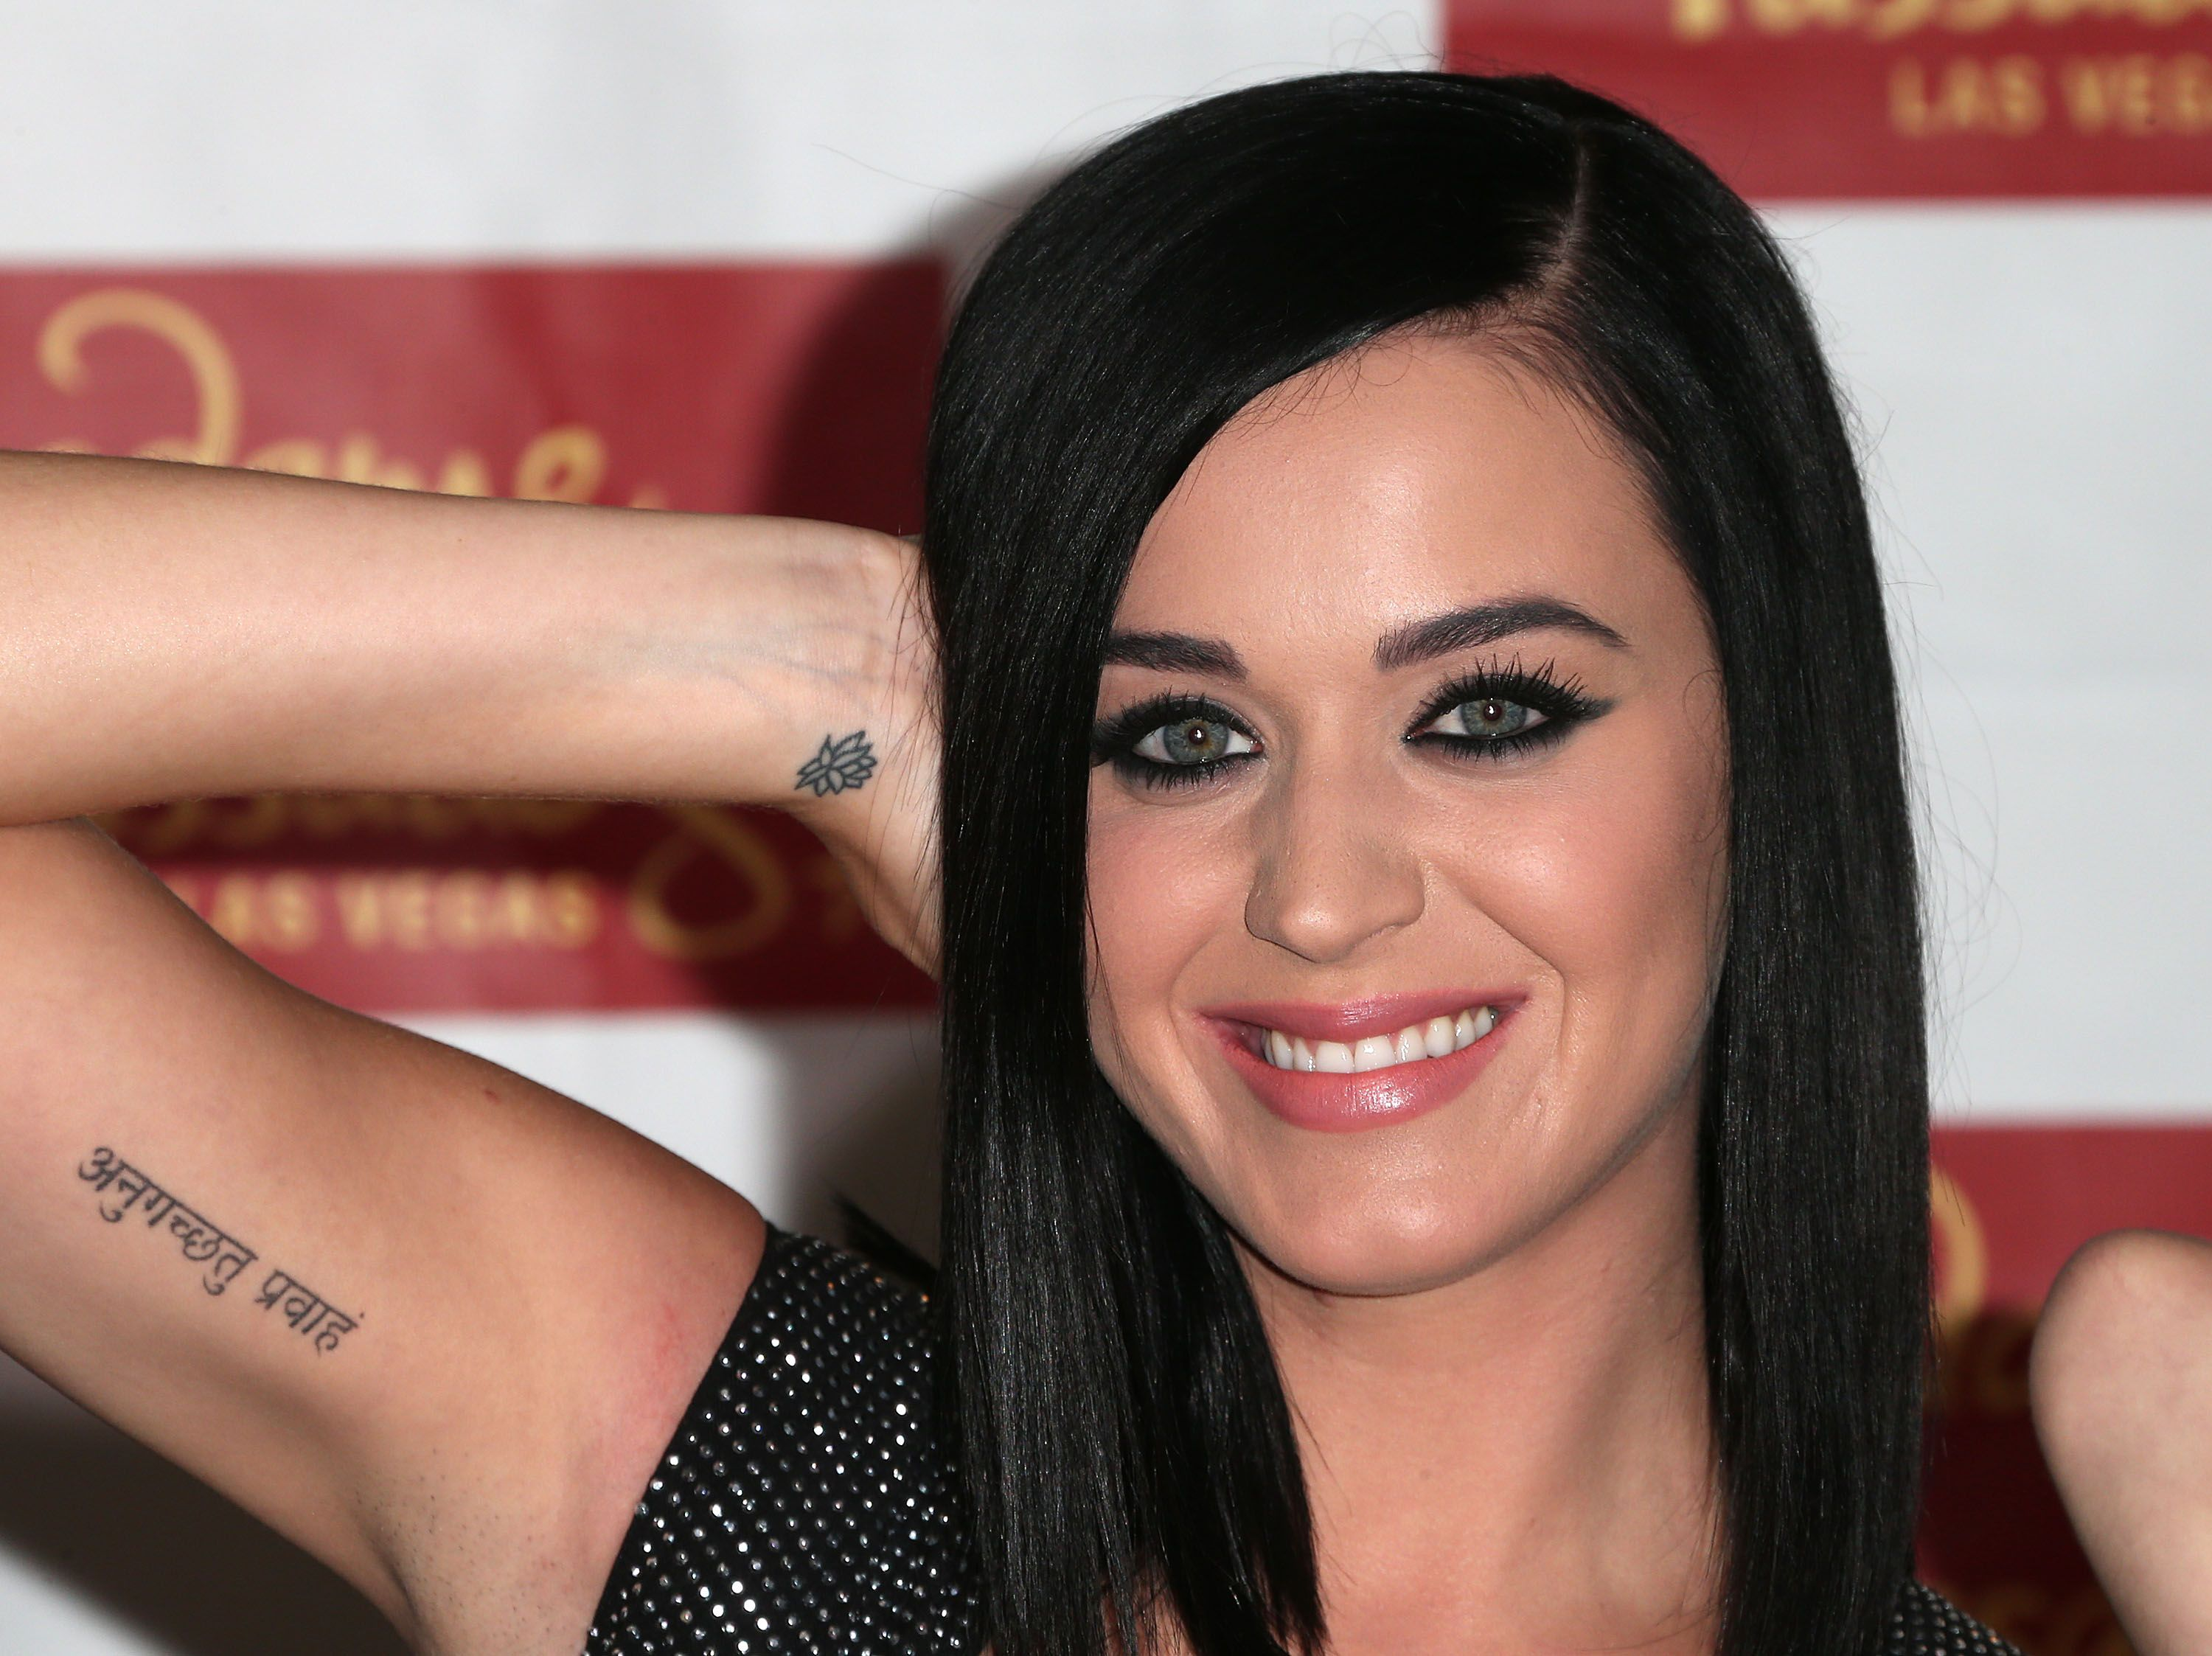 Katy Perry Unveils Her Wax Figure For Madame Tussauds' Las Vegas at Paramont Studios on January 26, 2013 in Hollywood, California | Photo: Getty Images